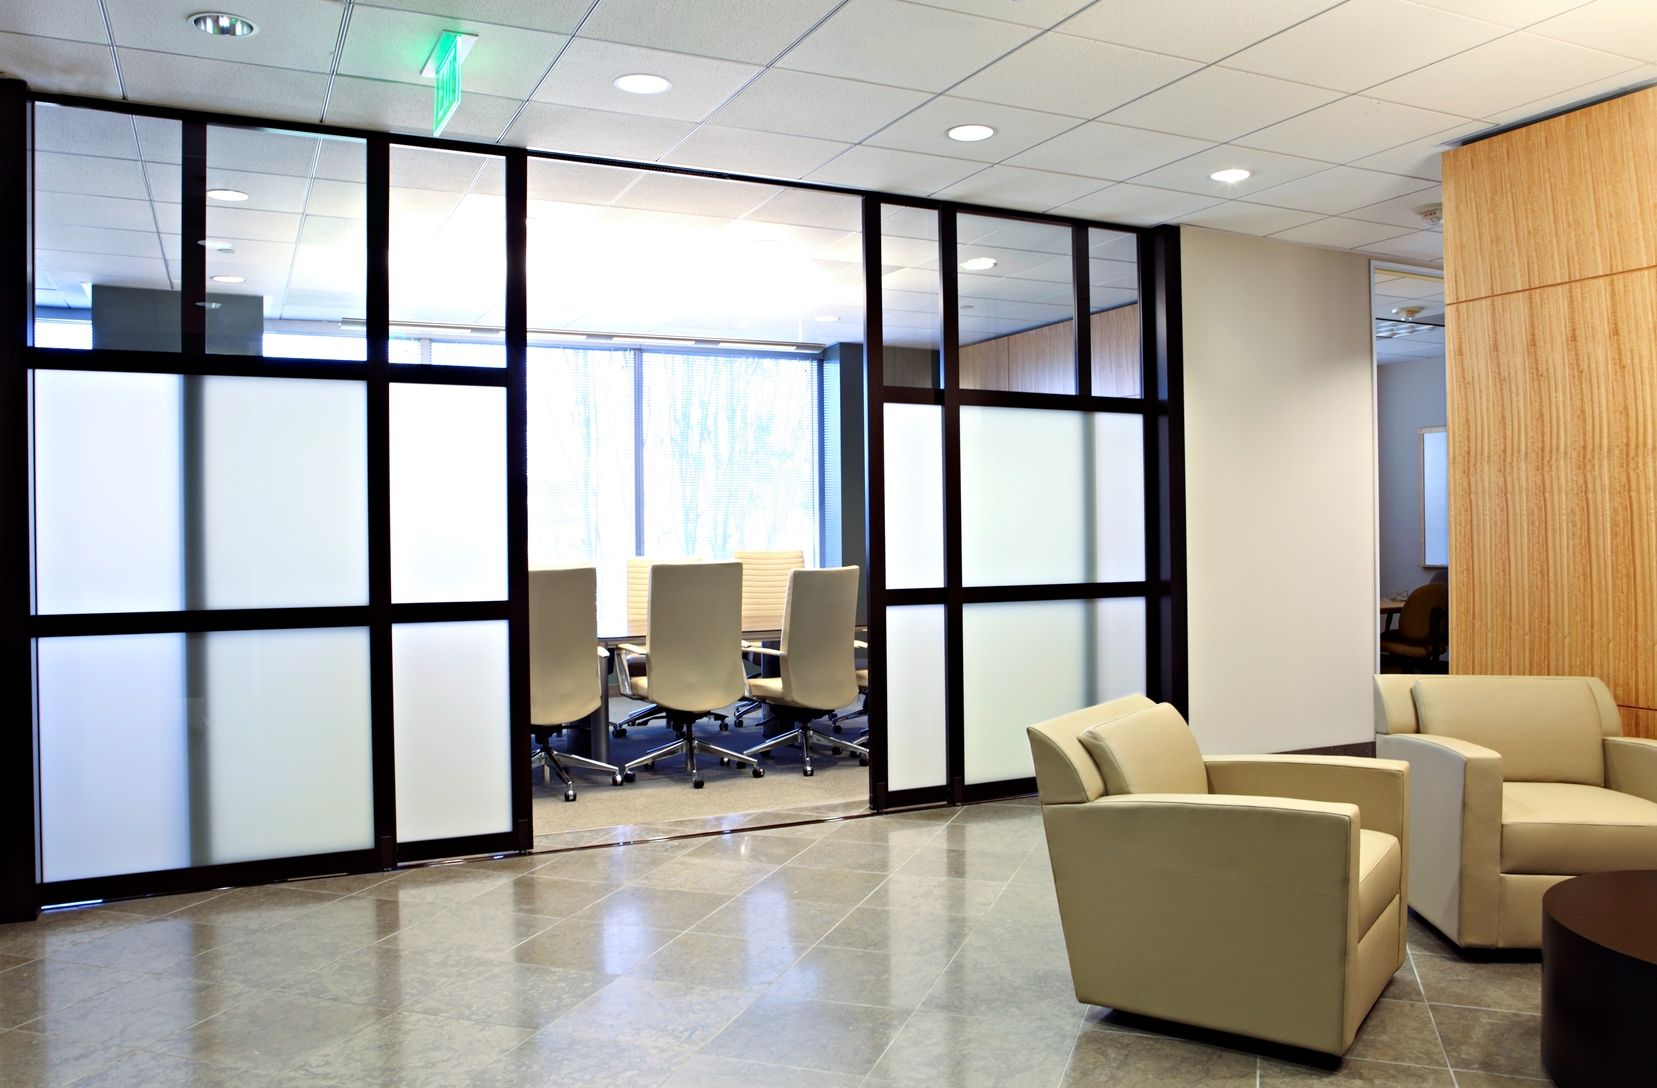 Space Plus A Division Of The Sliding Door Company Office Partition Walls Glass Office Cubicles Enclos Glass Room Divider Room Divider Modern Room Divider